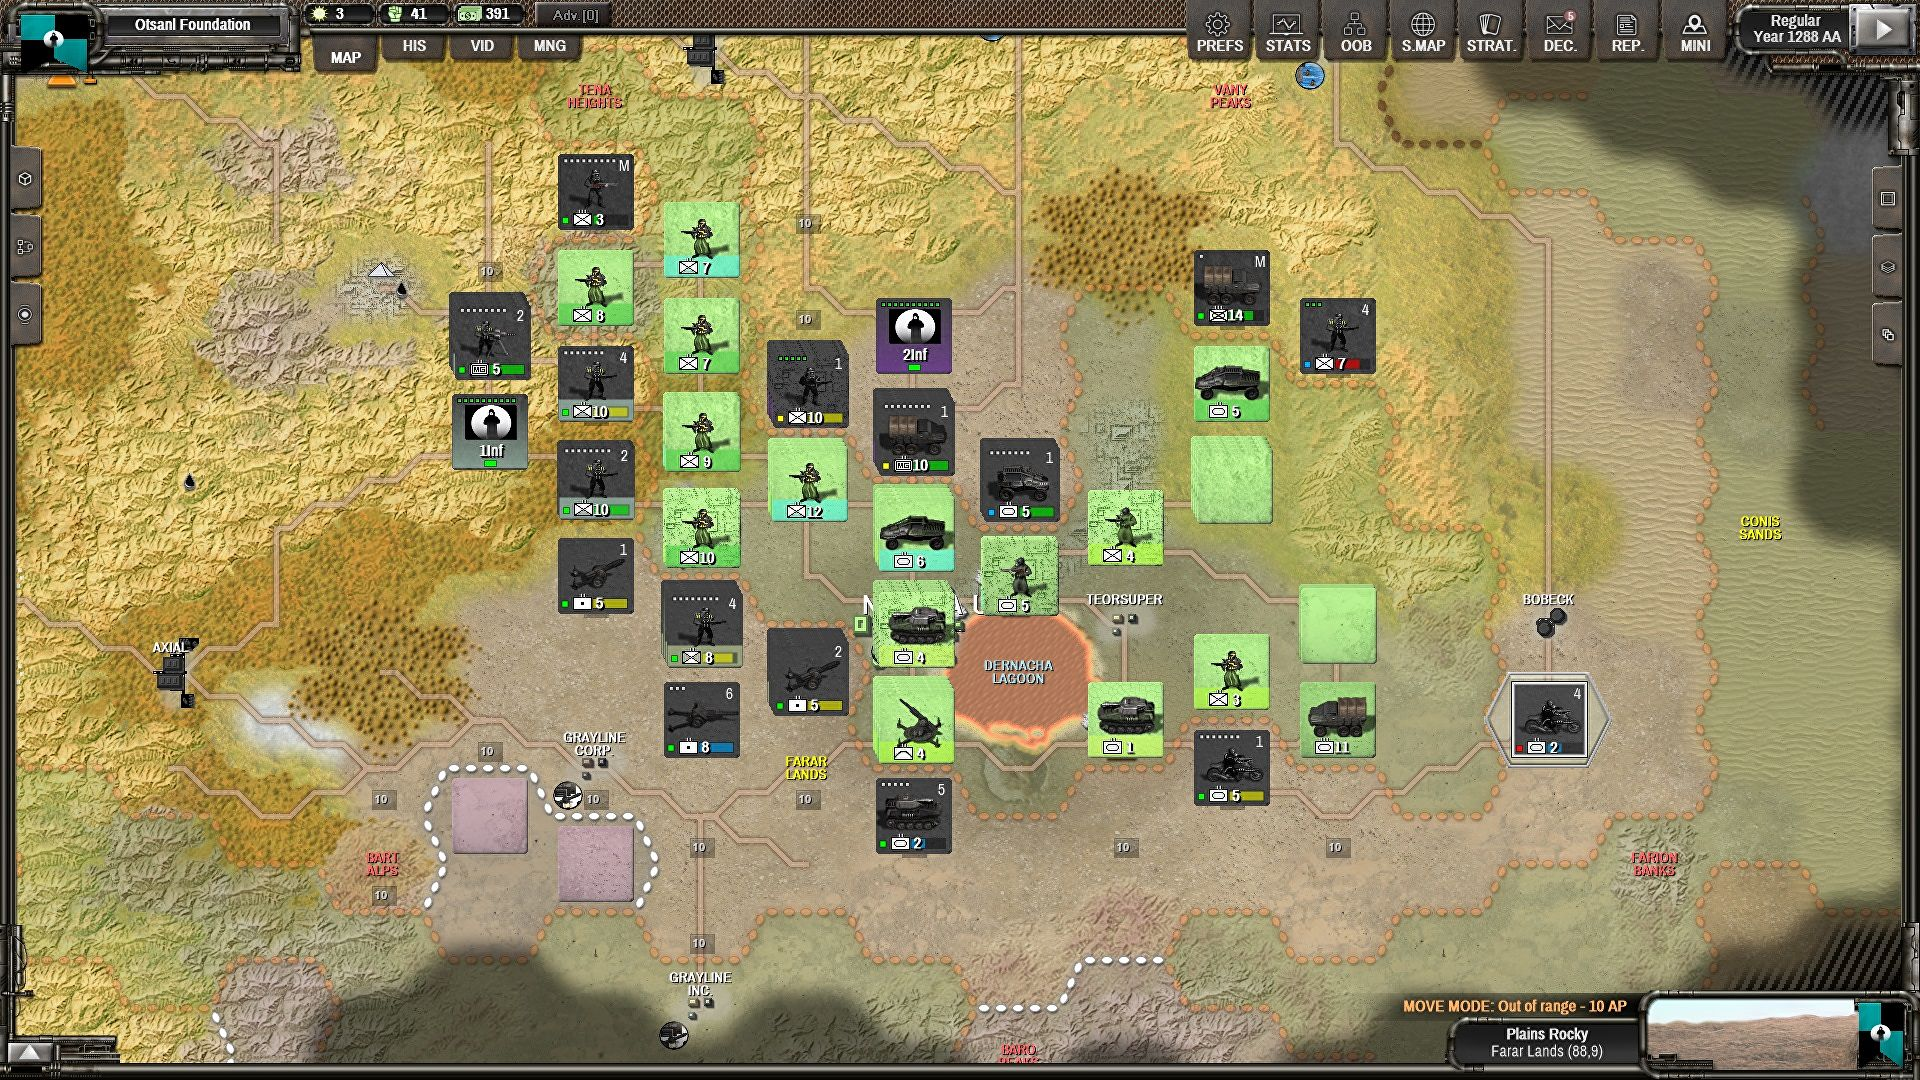 In the war of strategy games, Shadow Empire has already won